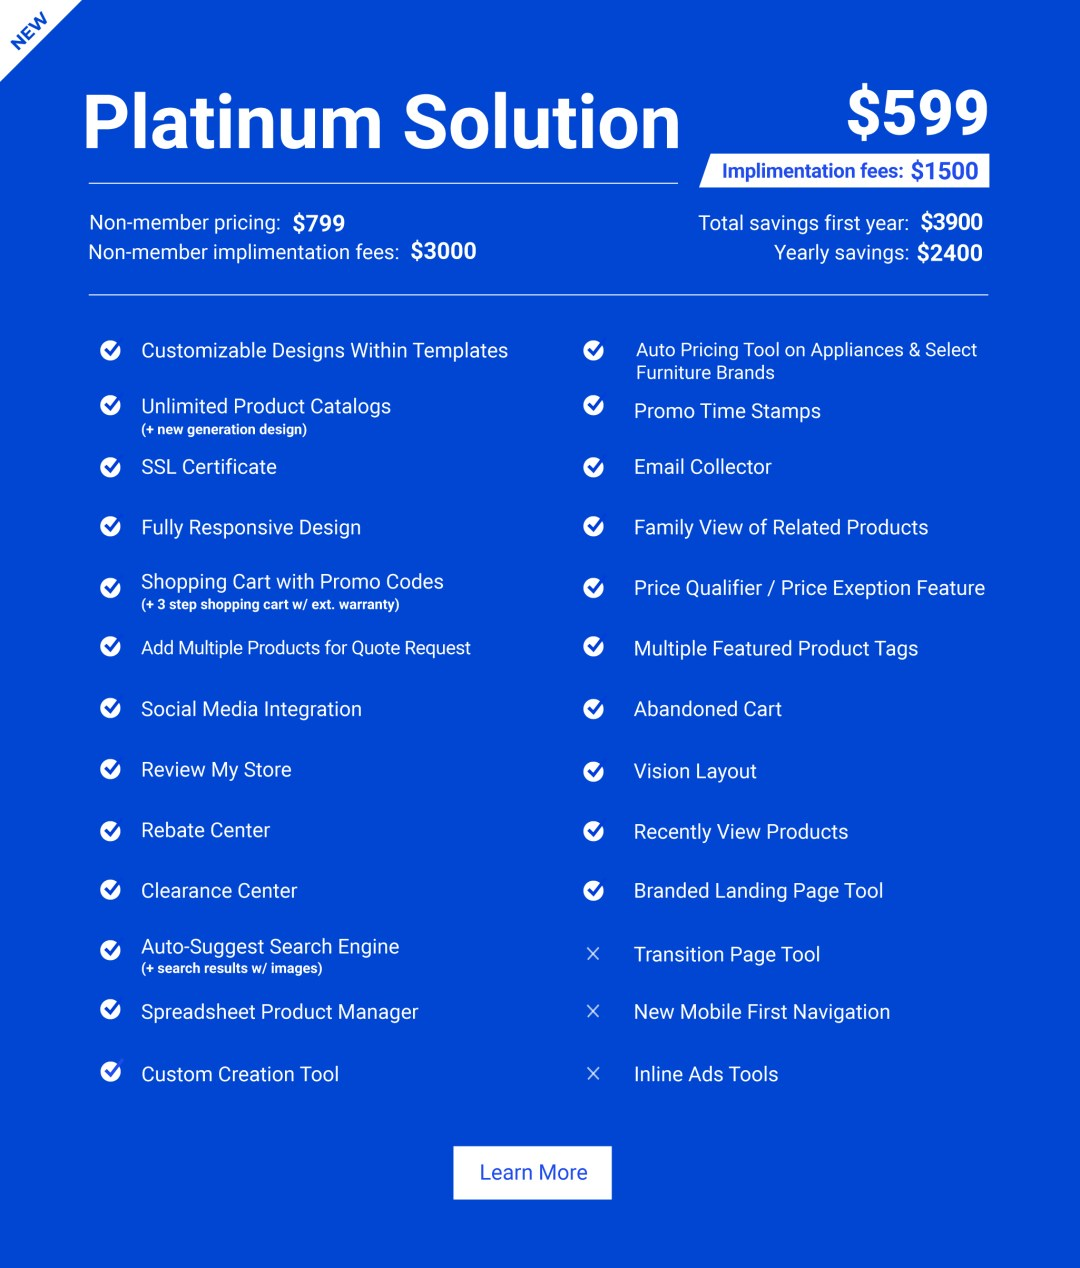 Retail Website Platinum Solution